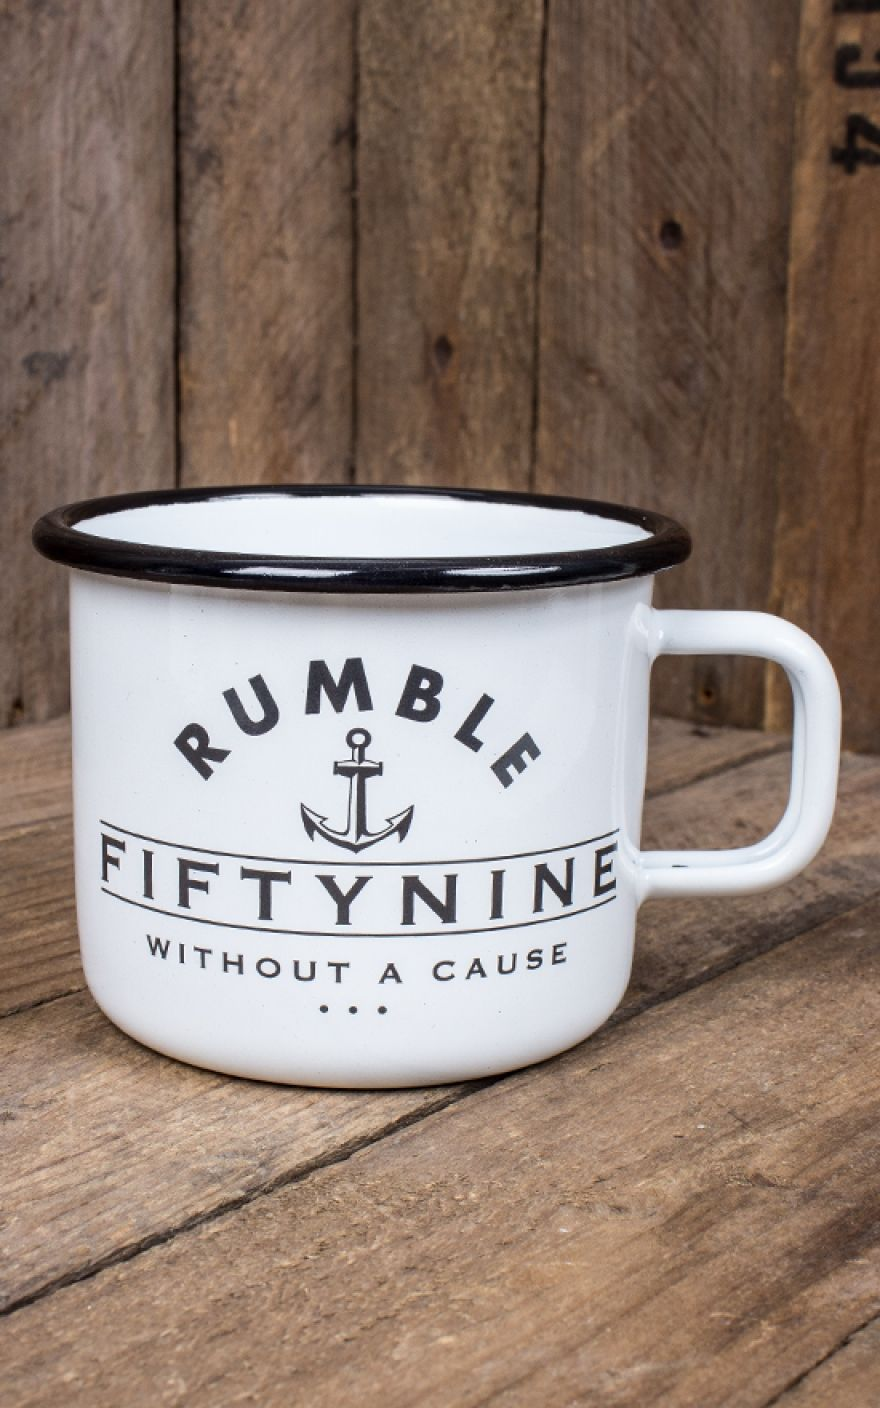 Becher Mit Bild Rumble59 Email Becher Tasse Black As Your Soul